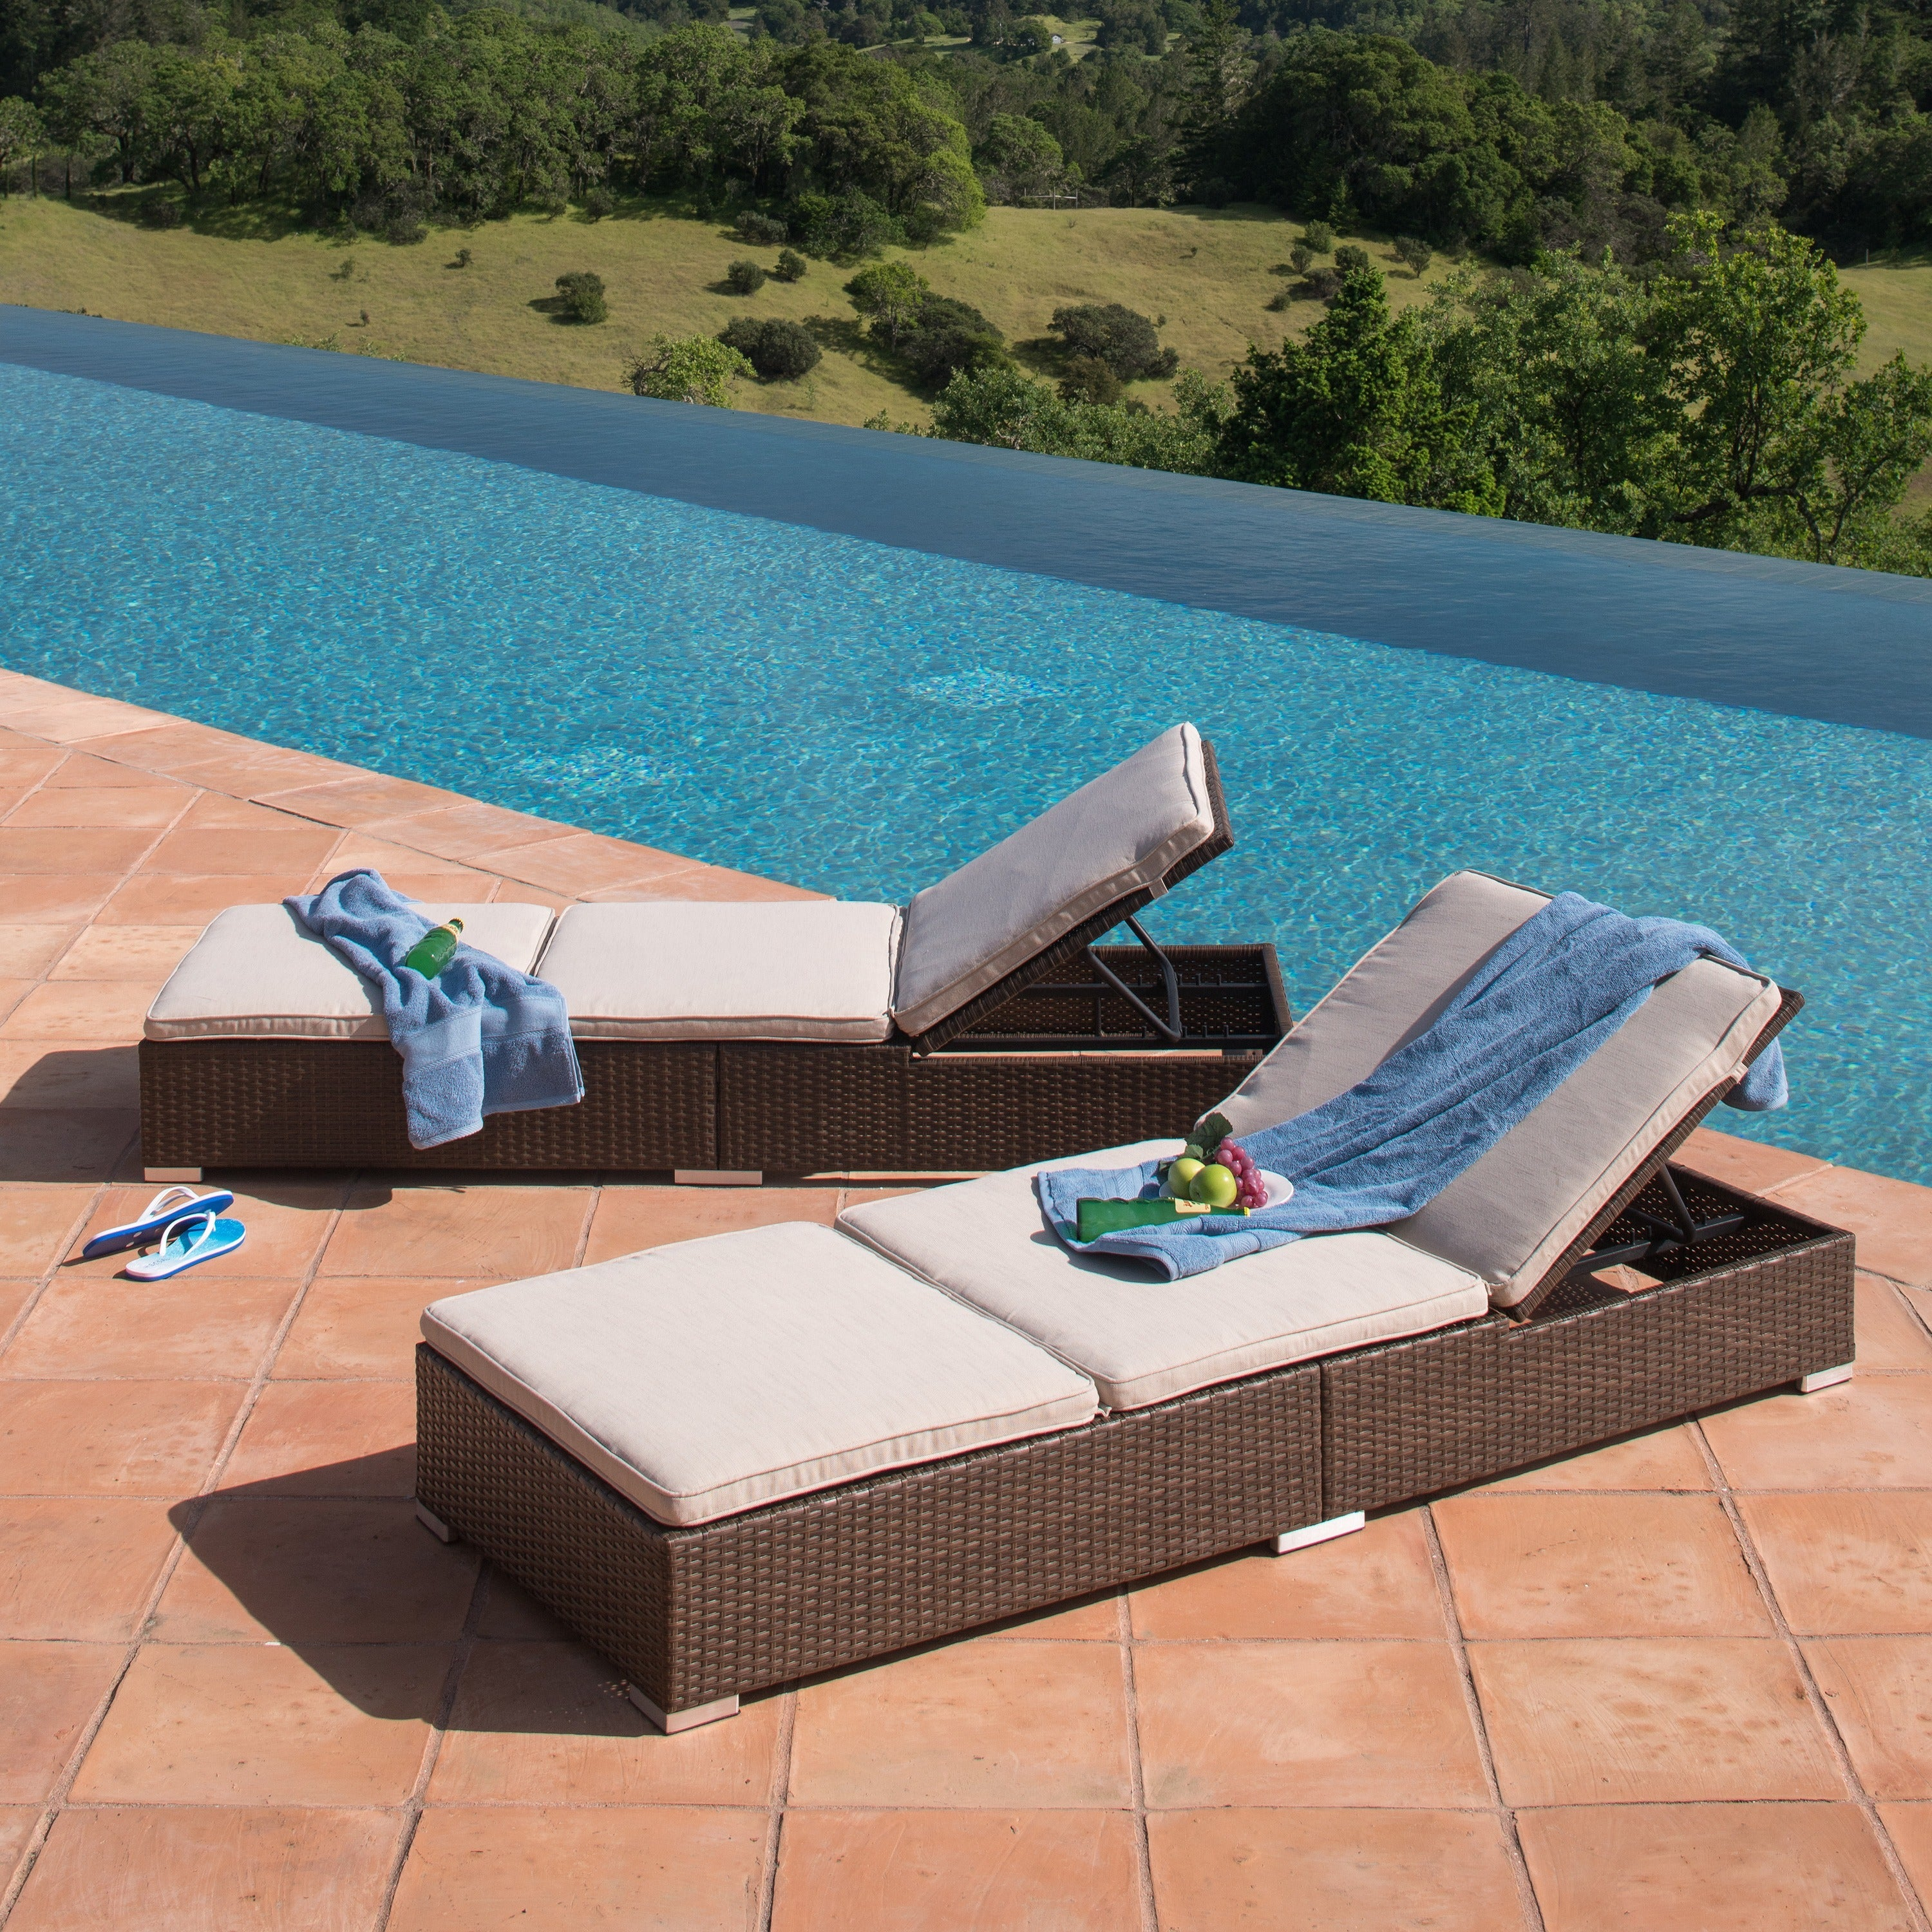 design lounge picture outdoor chaise lowesoutdoor sale remarkable plans on chairs cushions